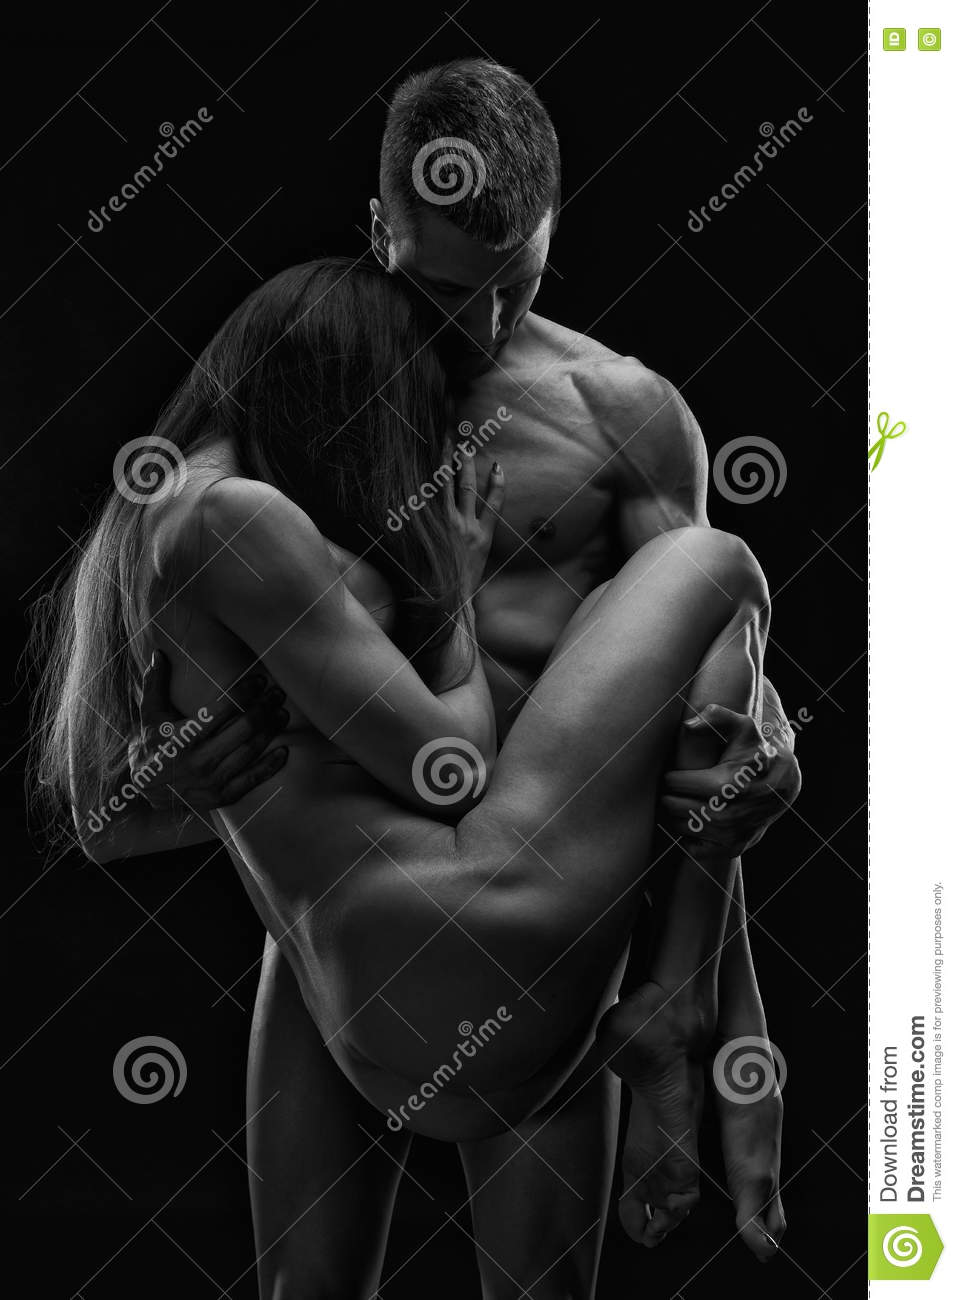 Black and white woman and man nude artistic-7699